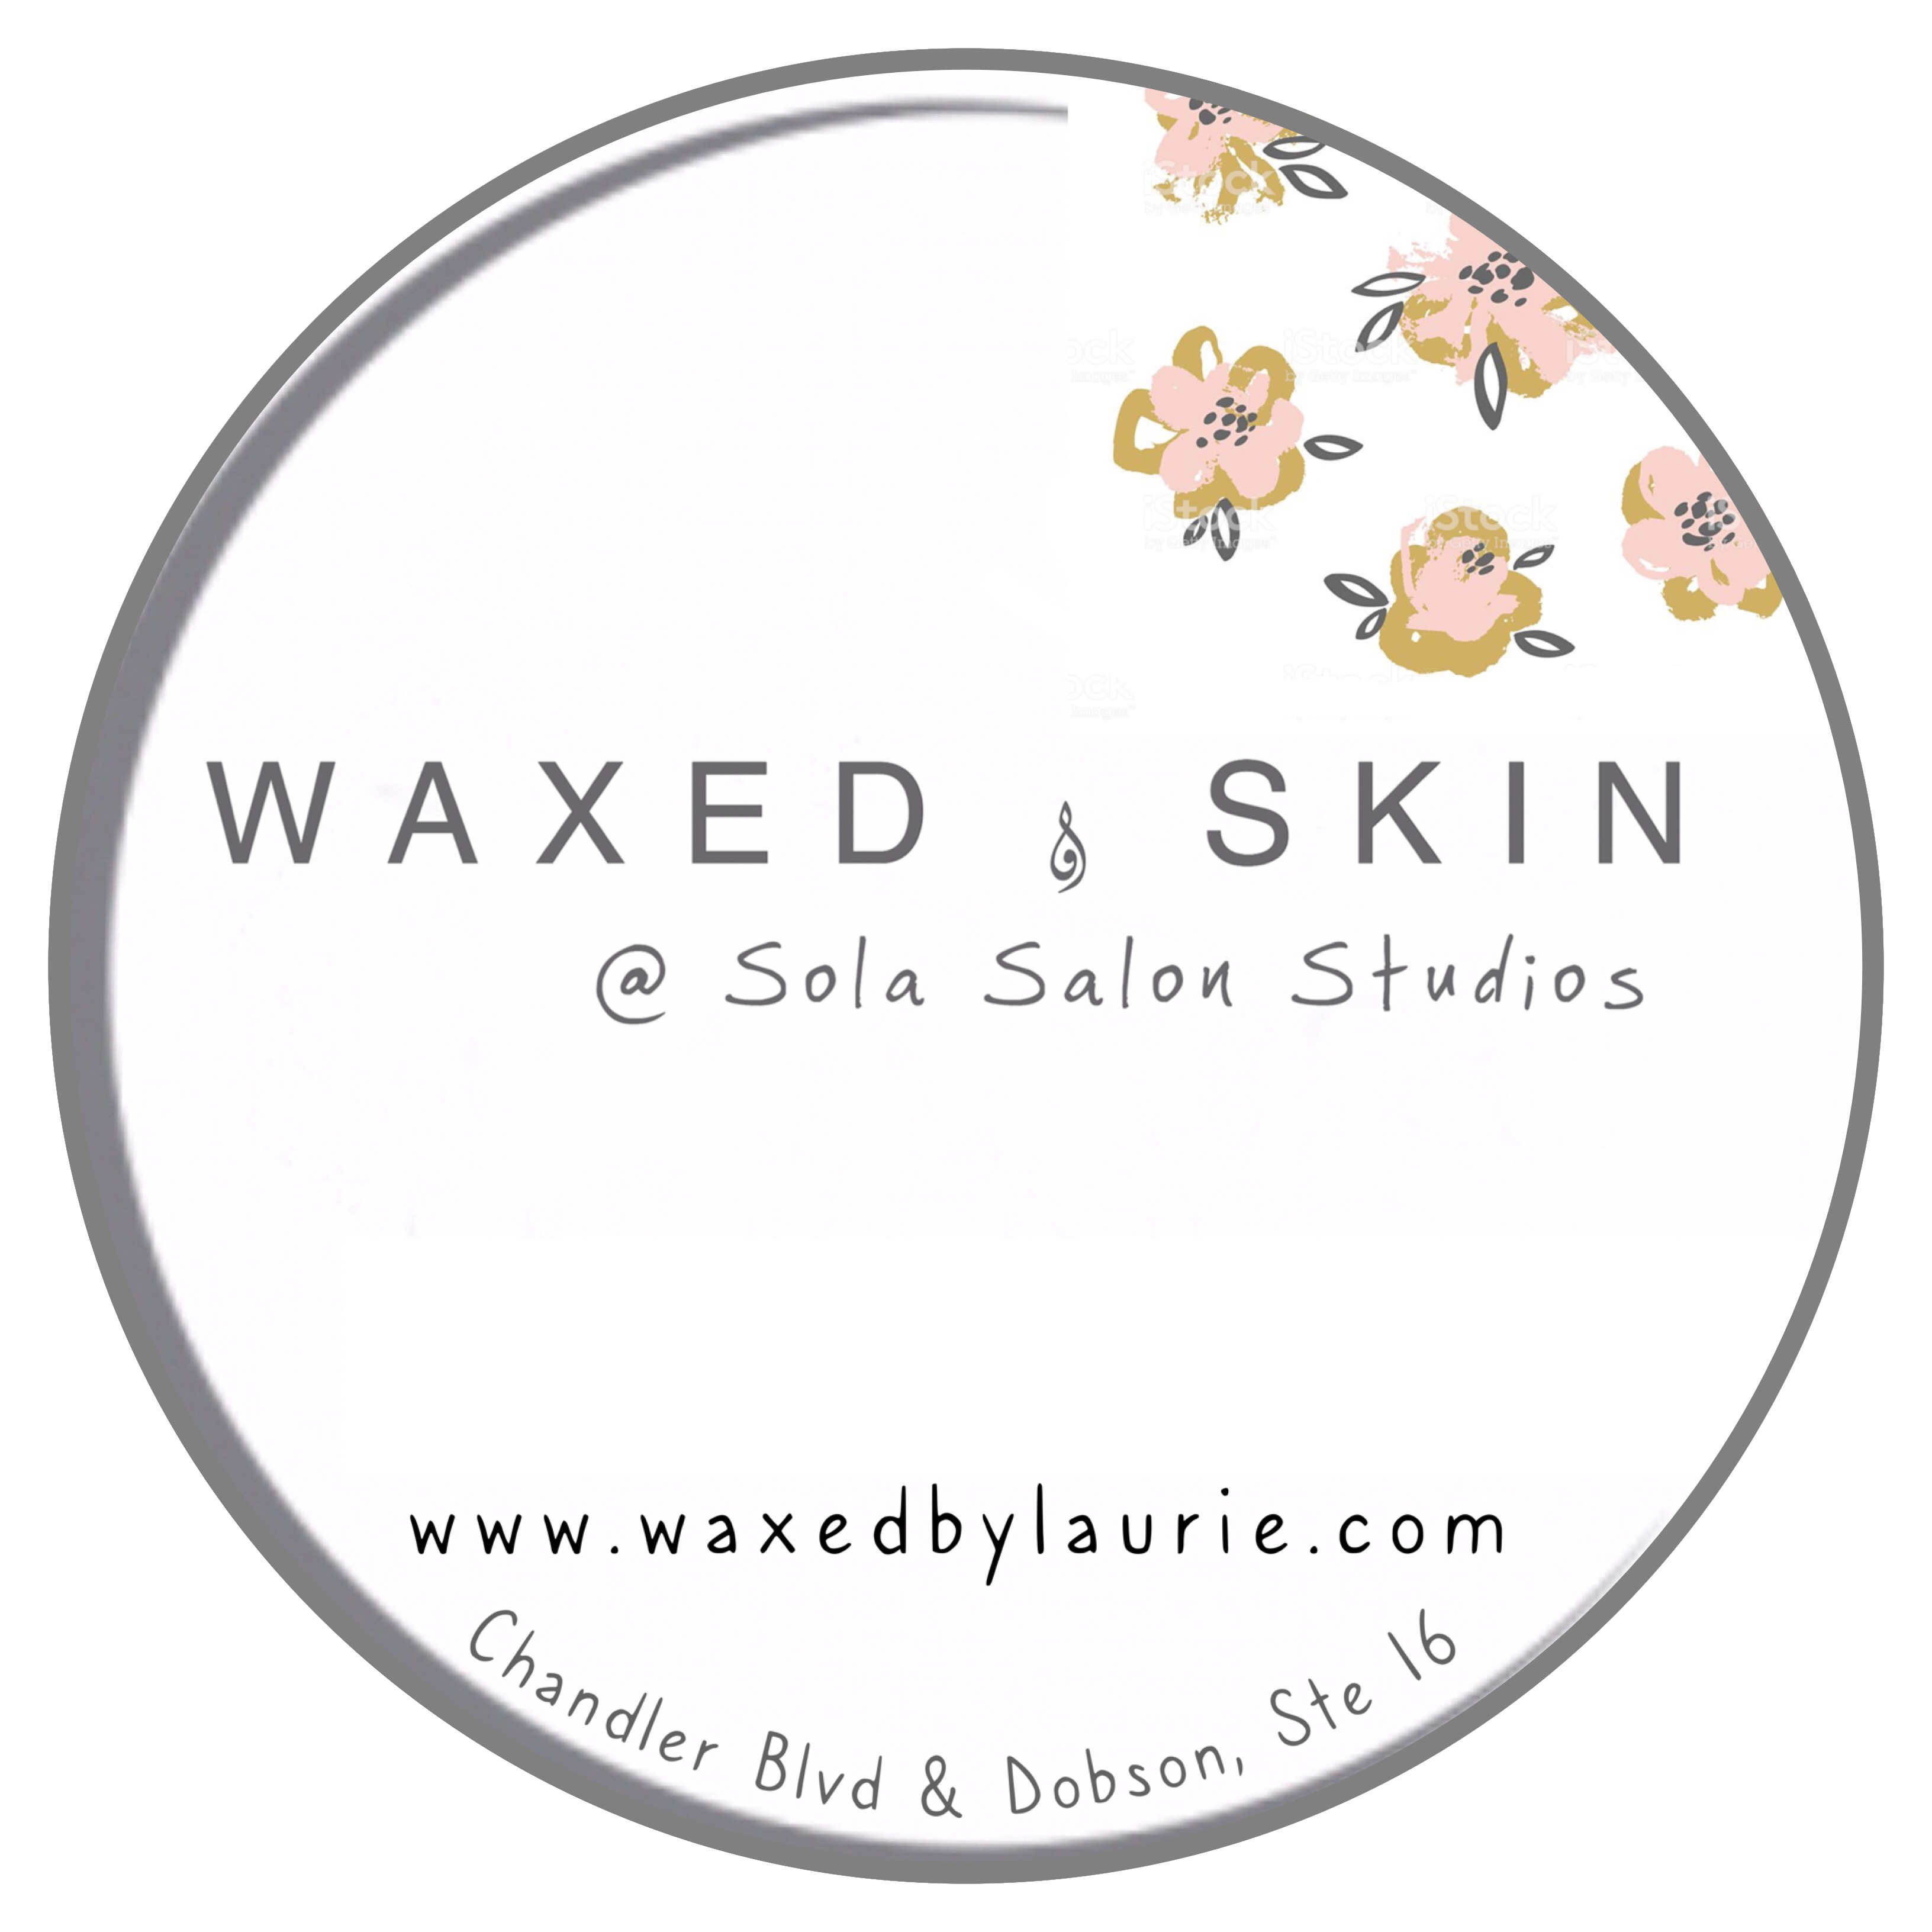 WAXED & SKIN WITHIN